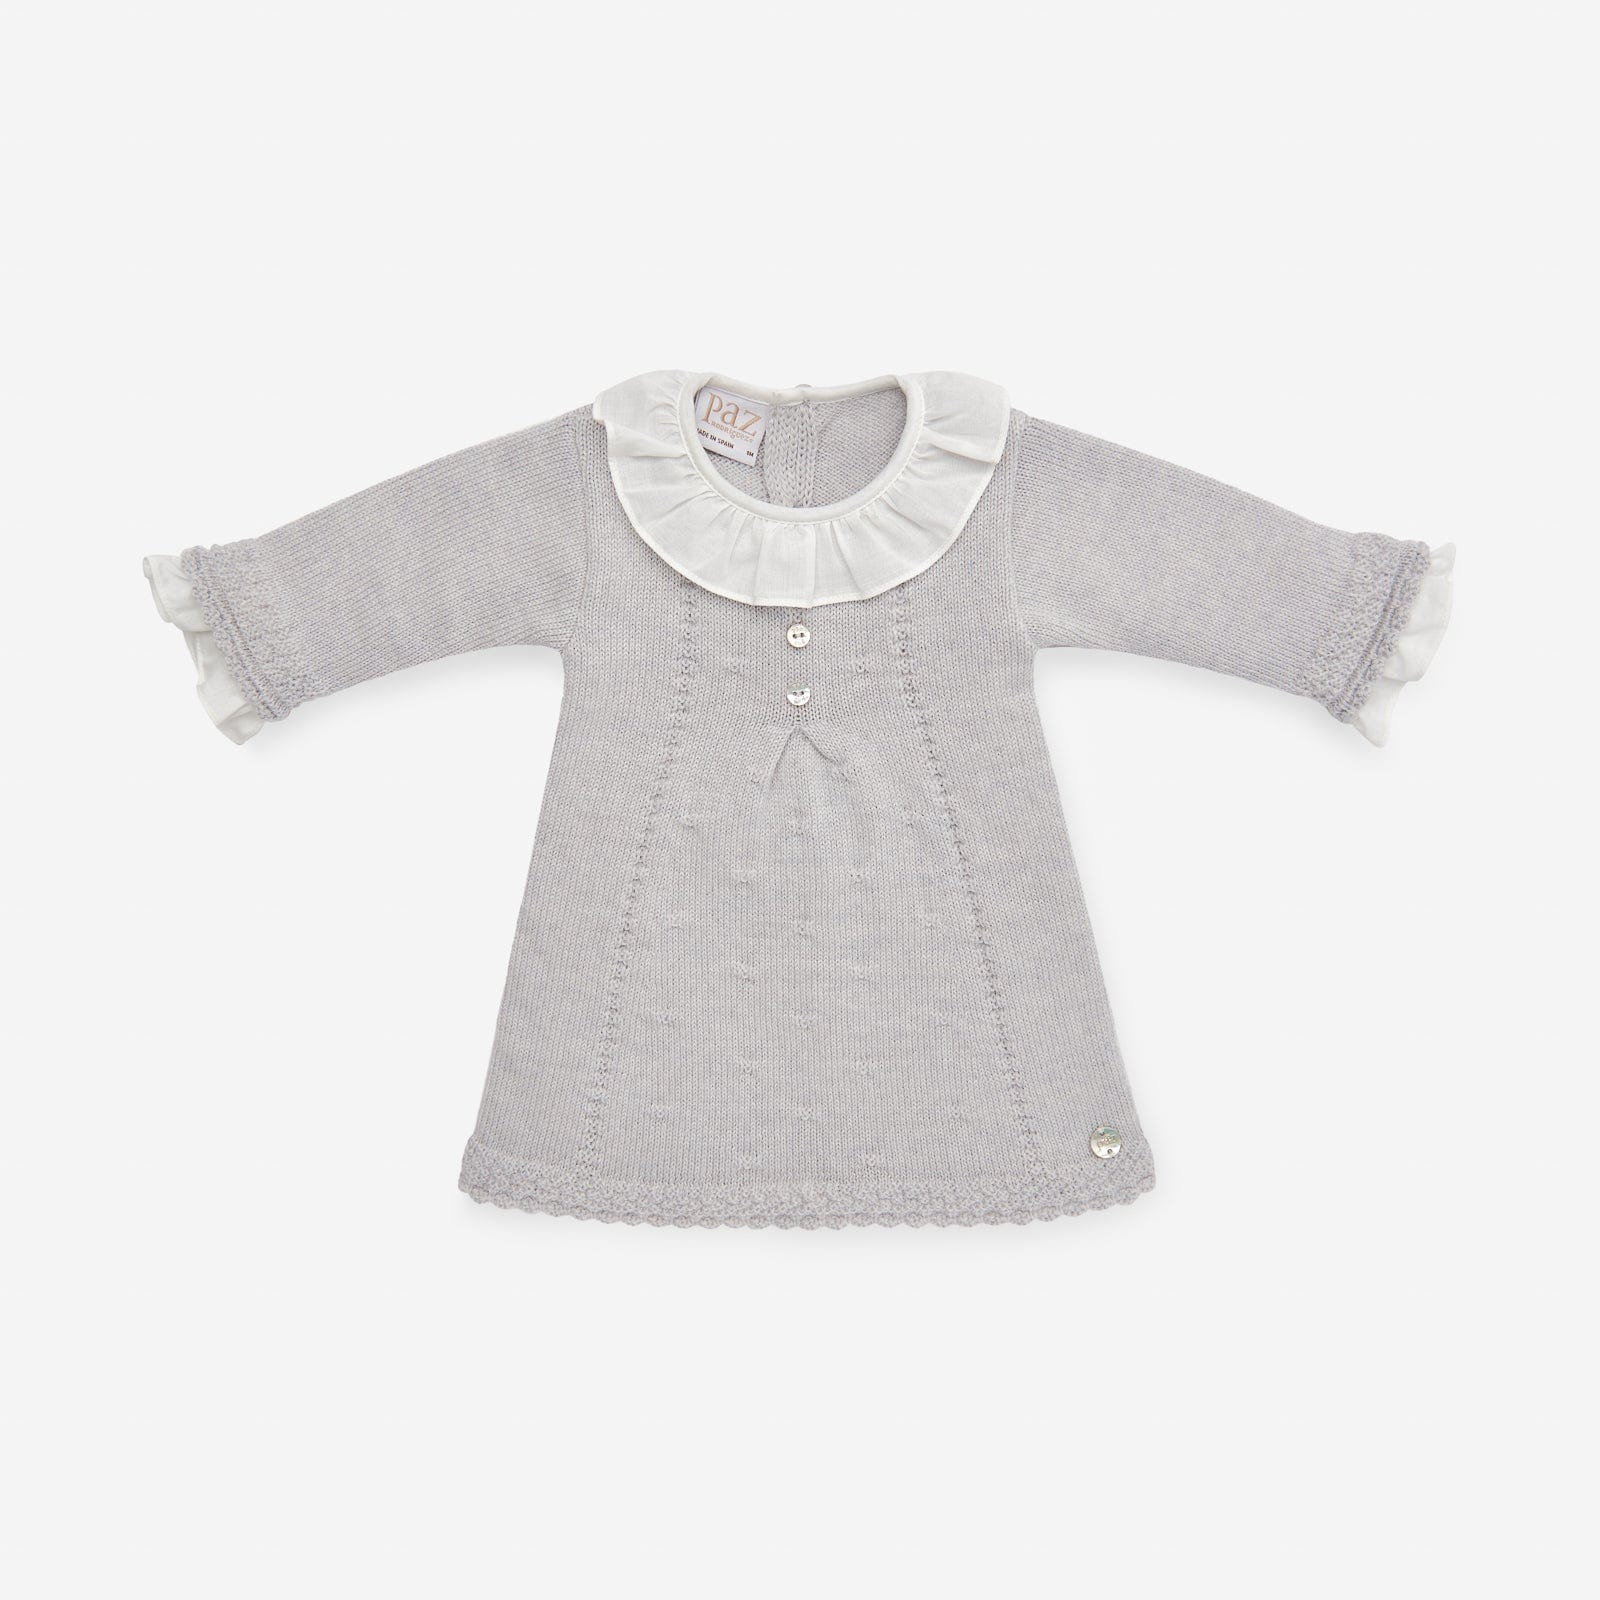 Paz Rodriguez Grey Knitted Dress